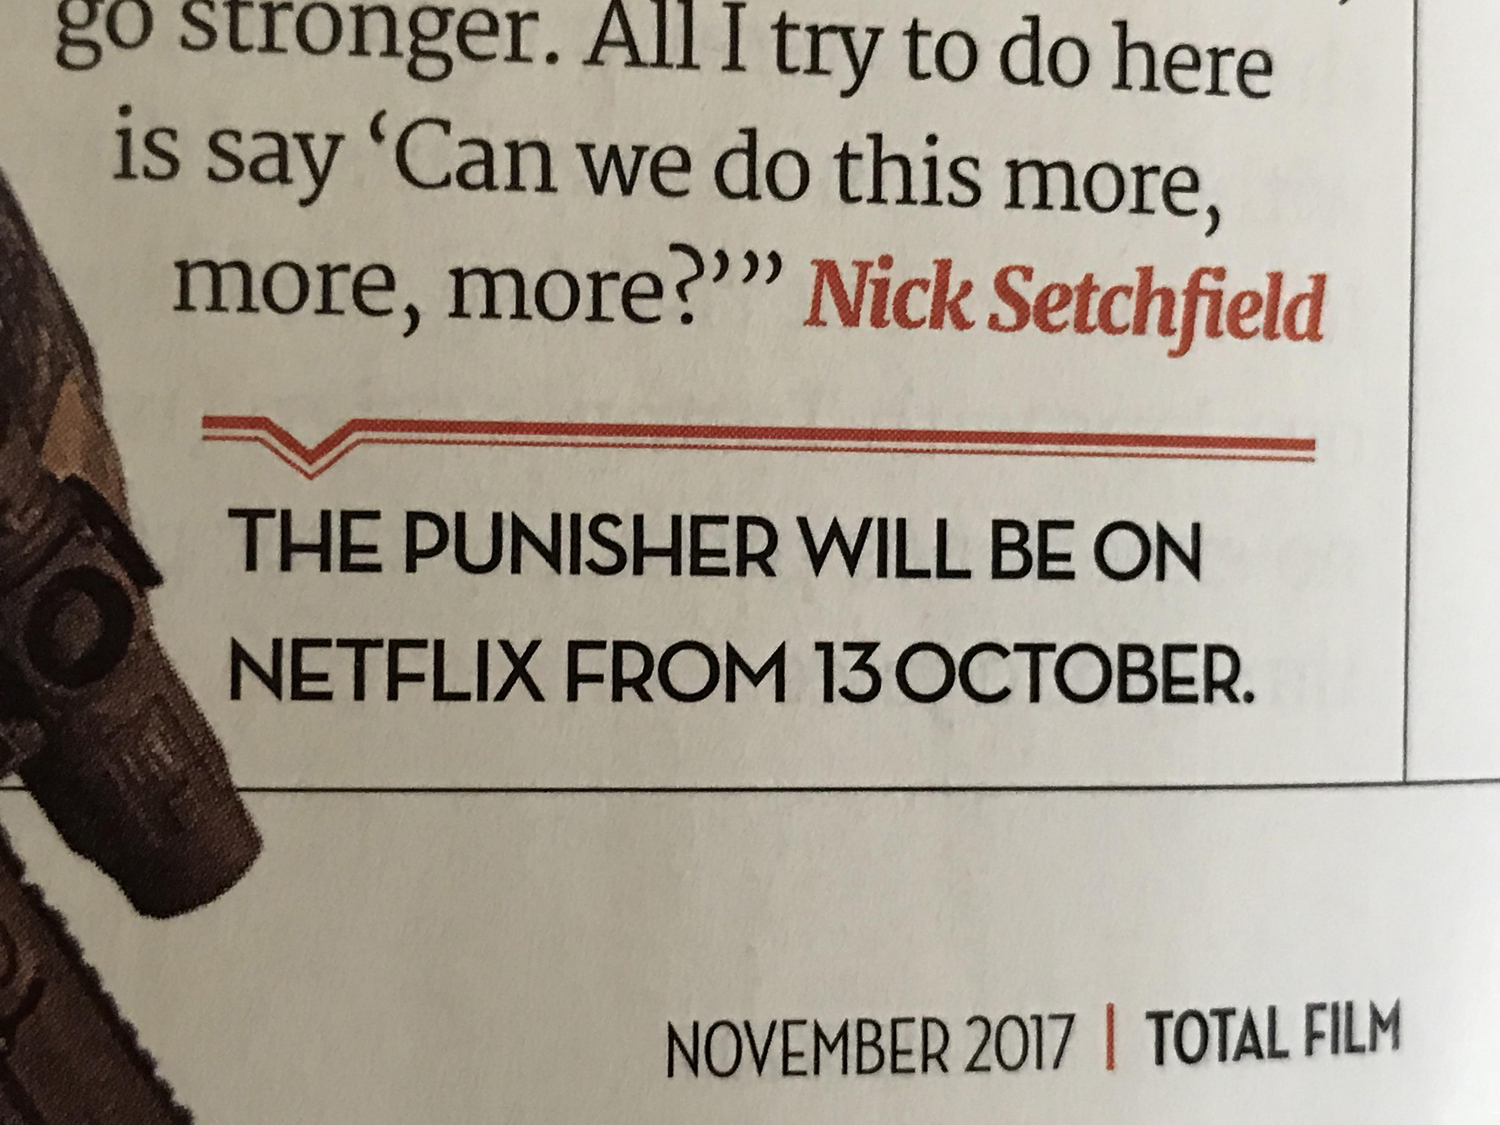 An excerpt from Total Film's latest issue that reveals The Punisher's premiere date